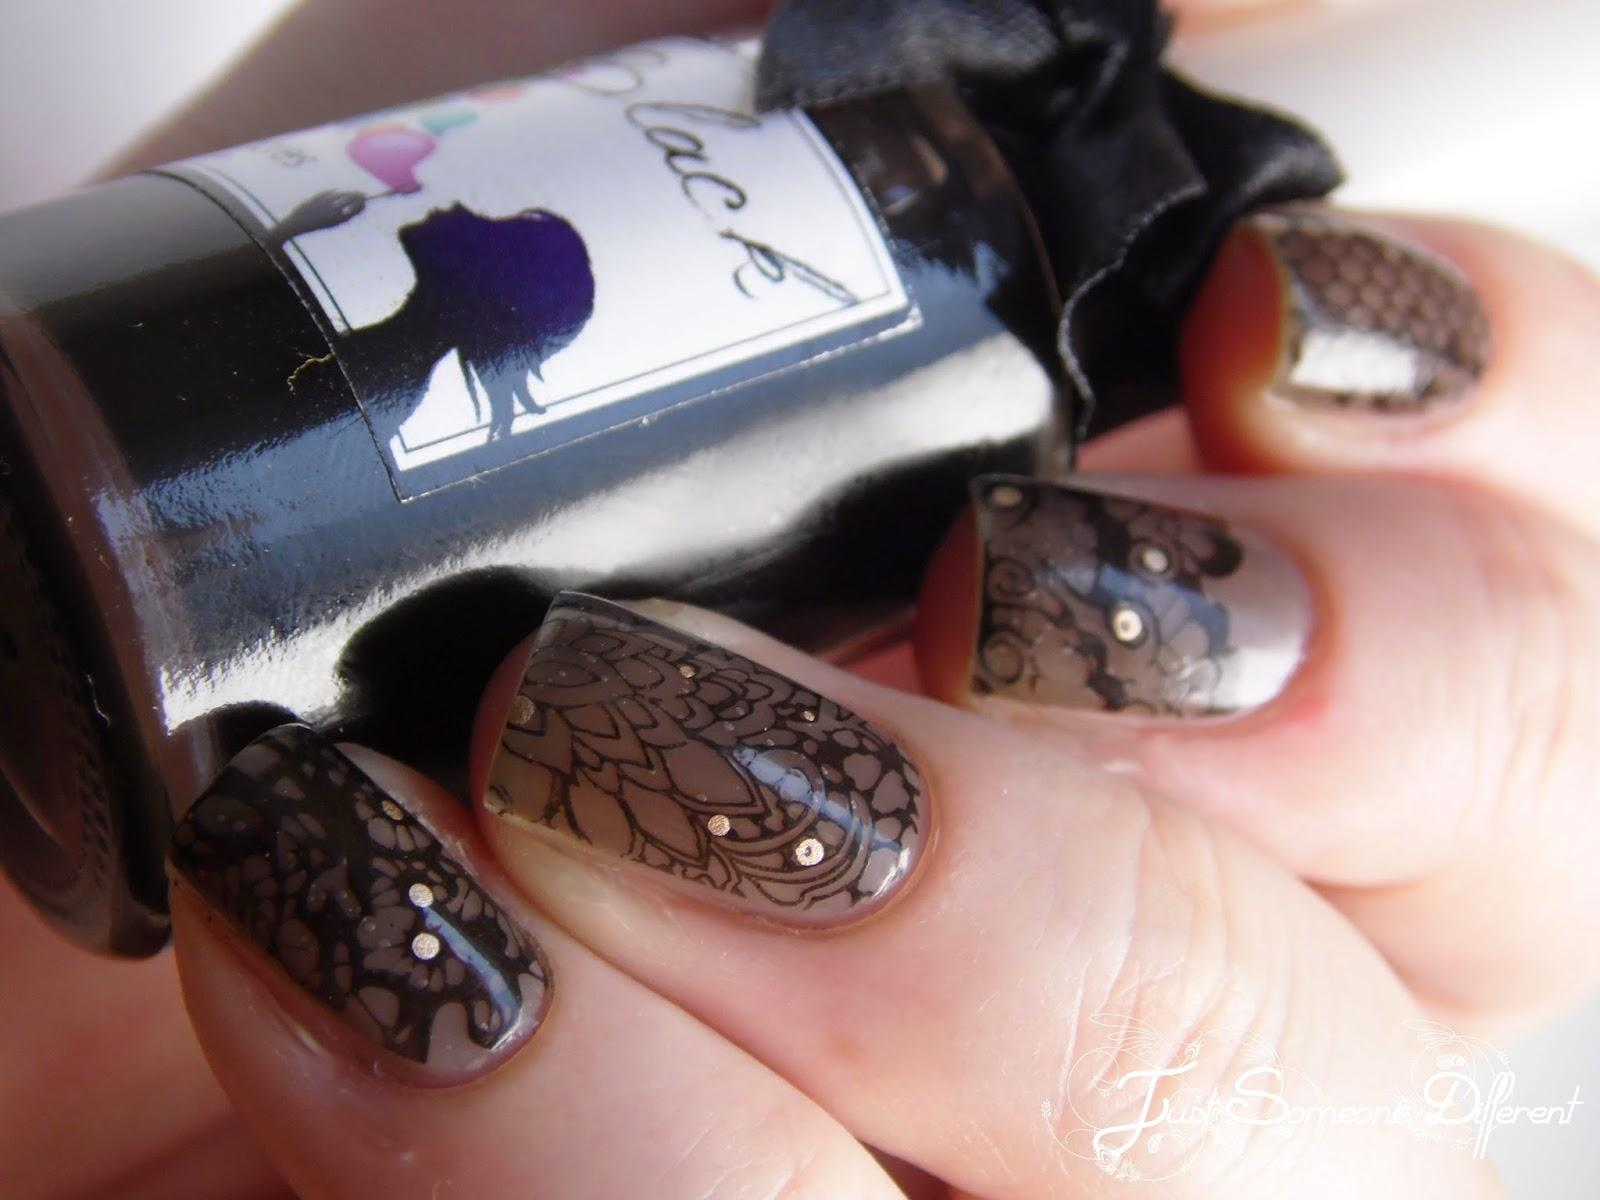 Lace stamping: Welcome to the Moulin Rouge!